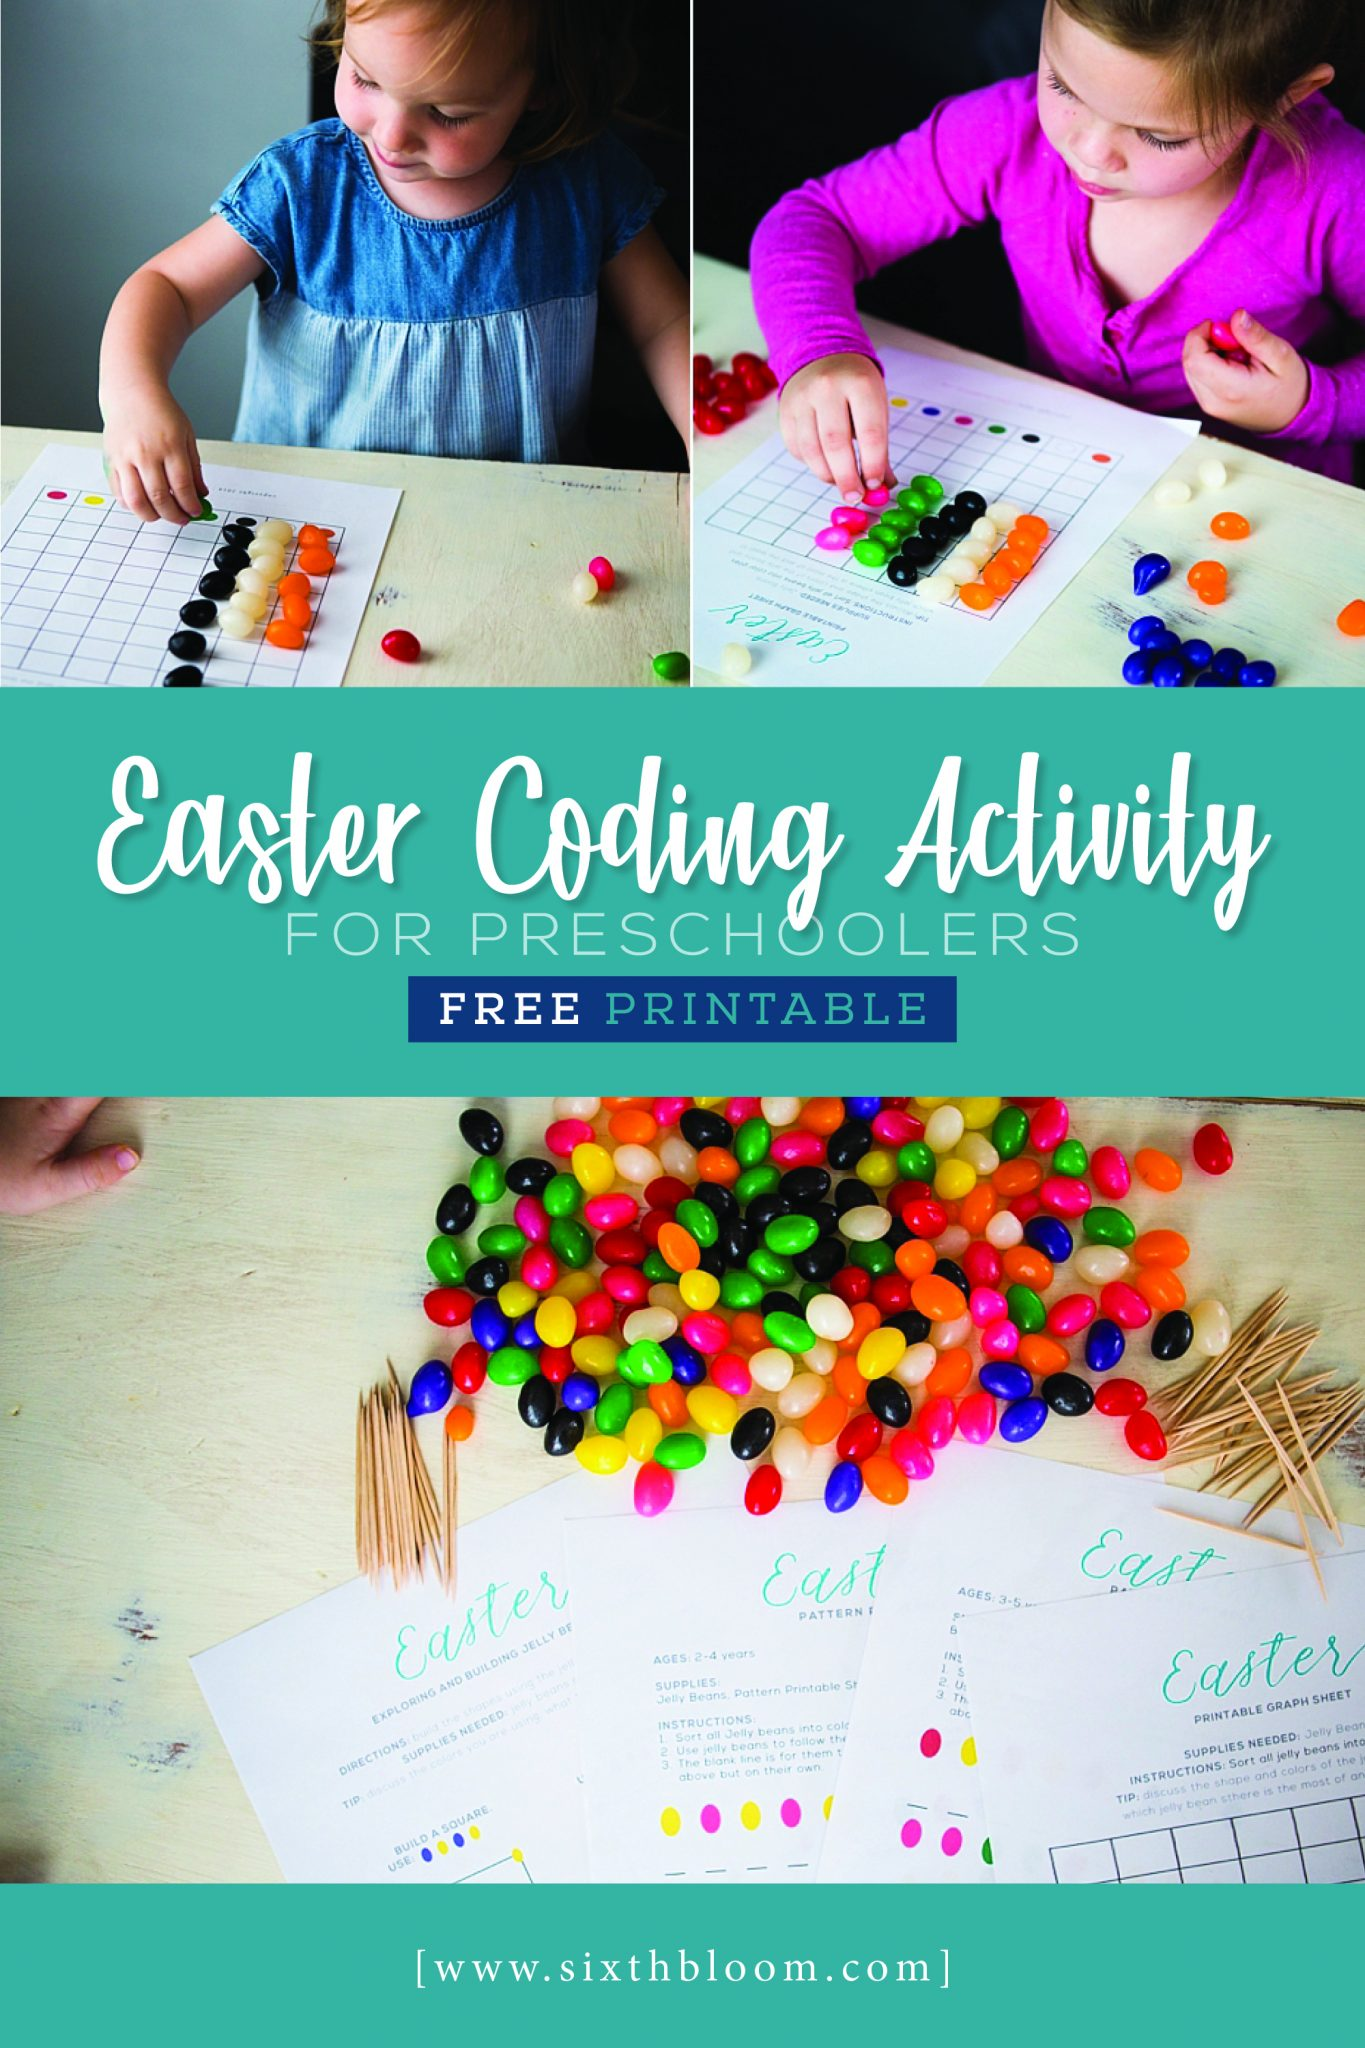 Easter Coding Activity for Preschoolers